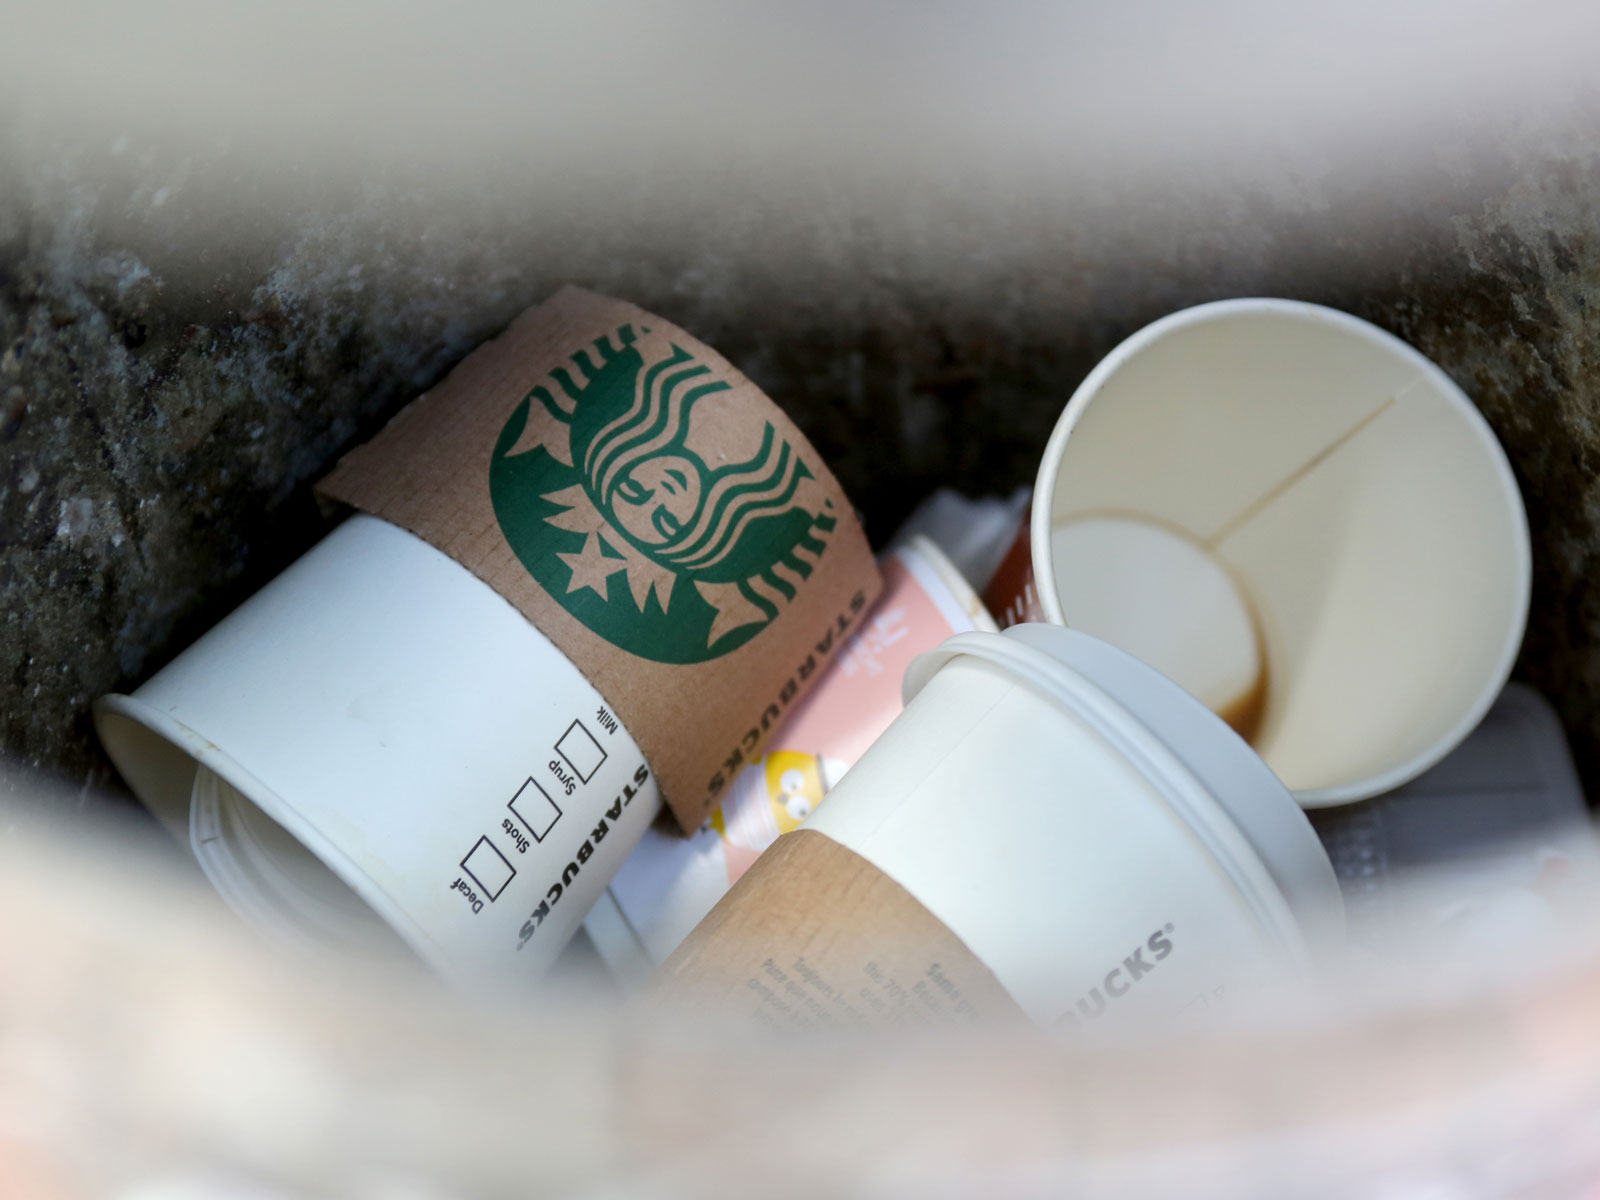 starbucks-cups-recycling-FT-BLOG1118.jpg